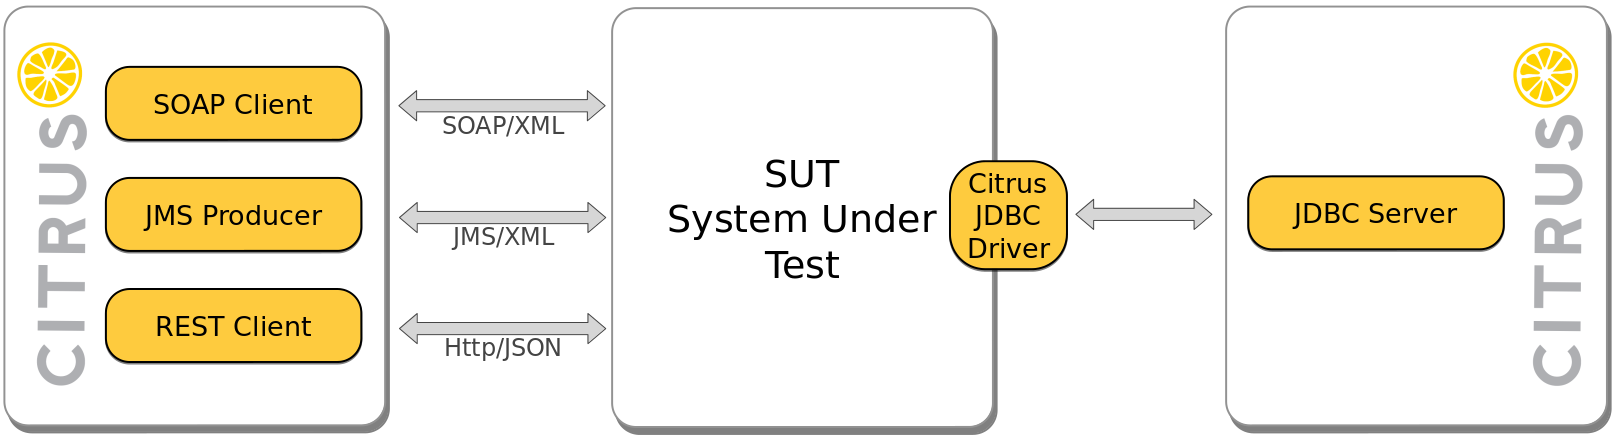 assets/2018-03-01-database-testing-with-citrus/citrus-jdbc.png